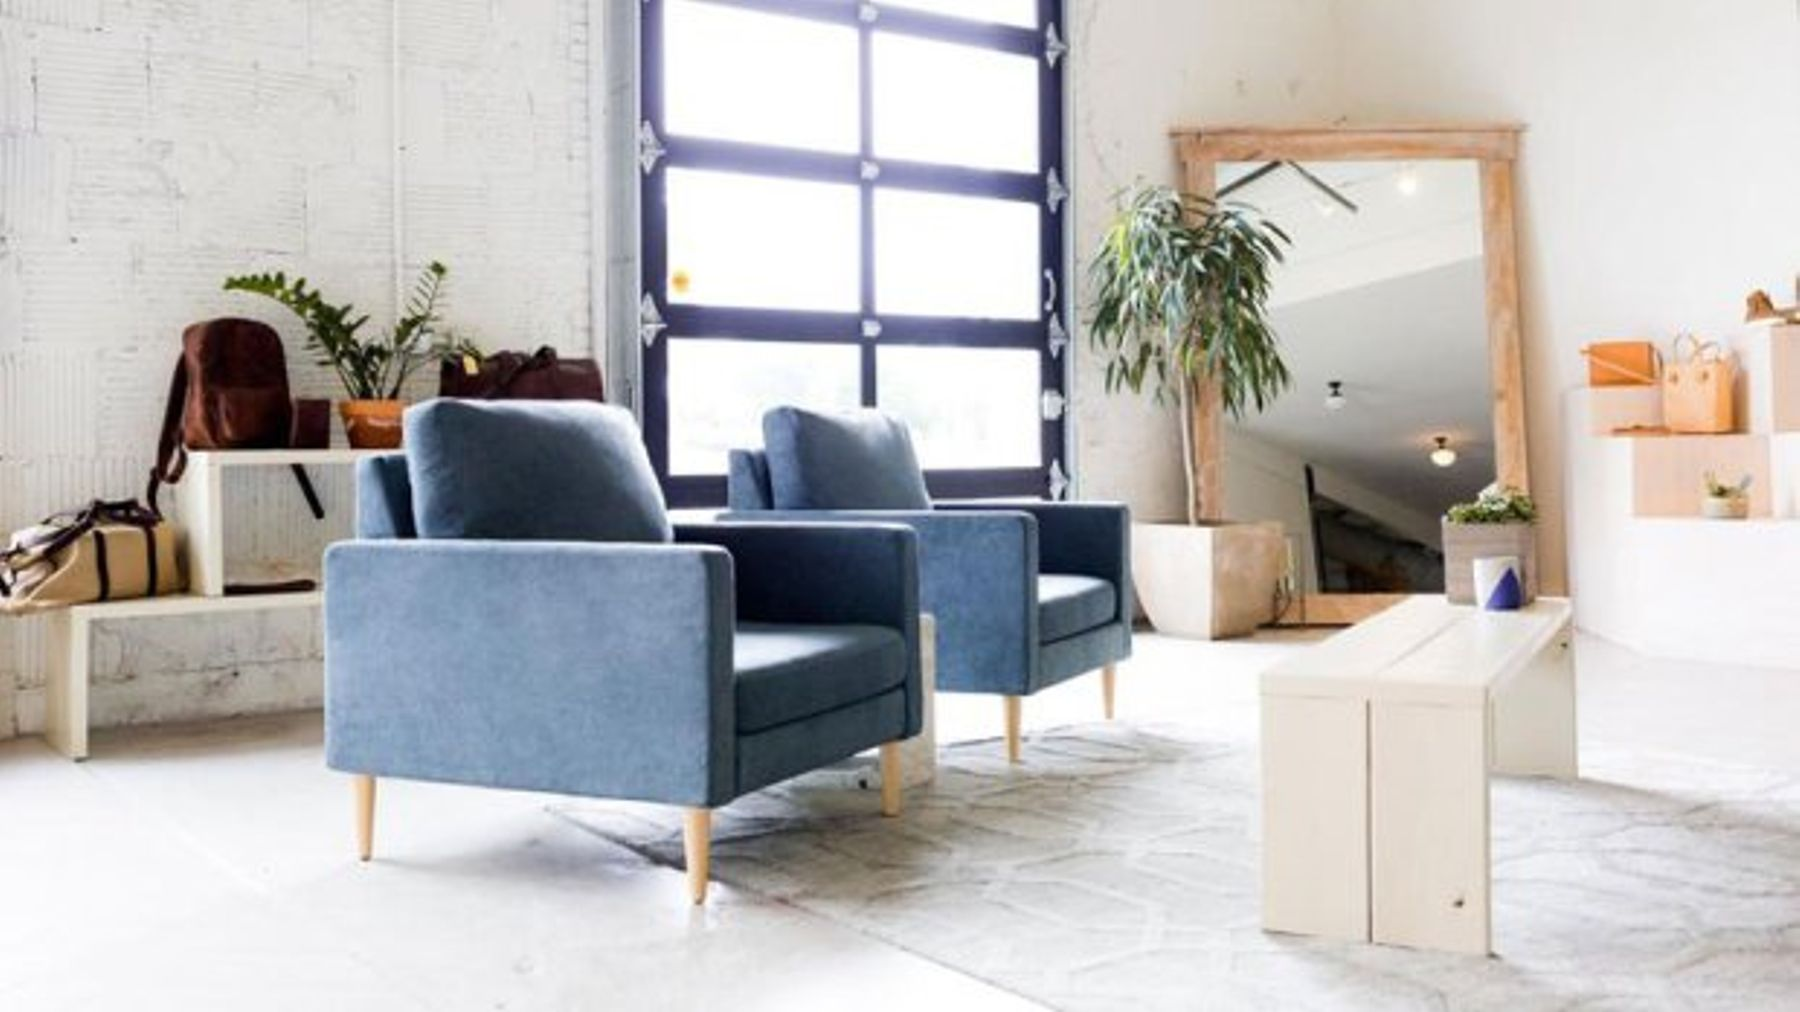 A New Furniture Company Has Designed High Quality Flat Pack Sofas That Can Be Sent In The Mail With Your Other Online Orders